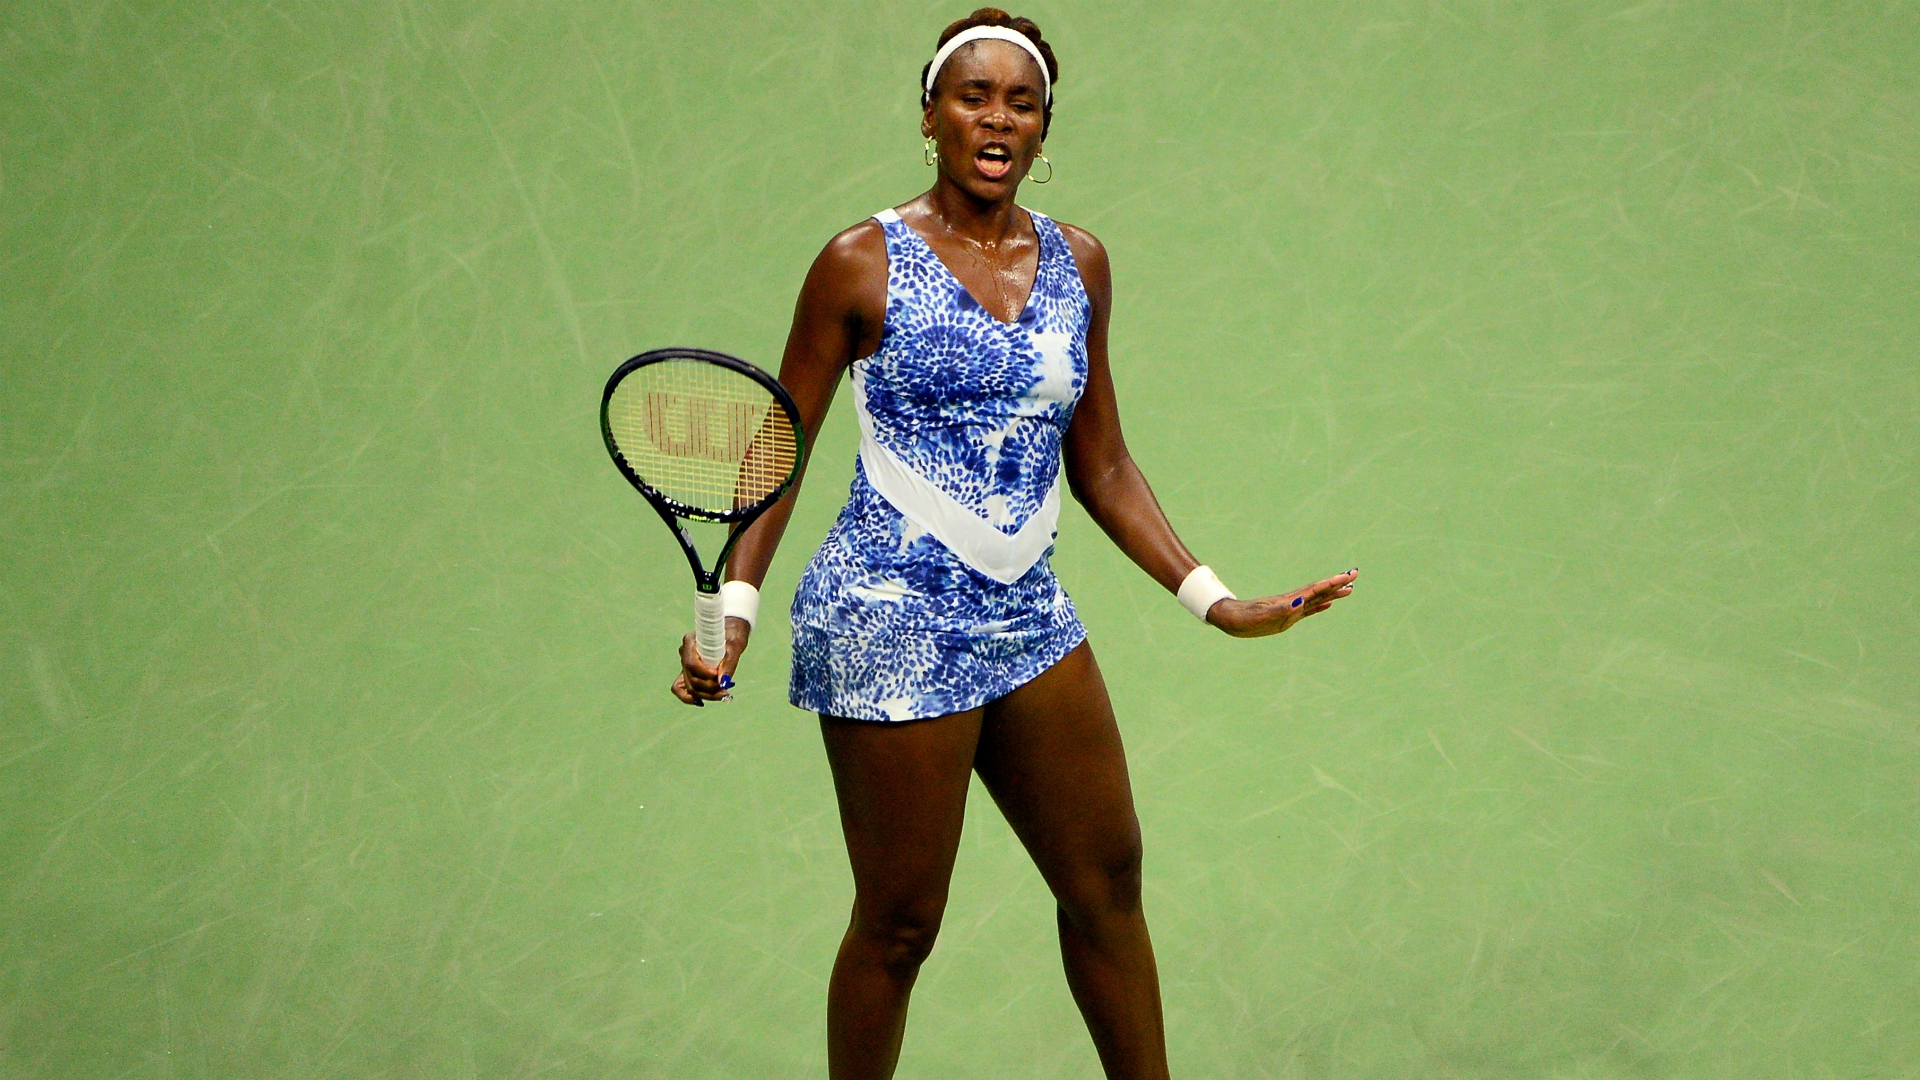 Venus Williams Wallpapers And Backgrounds